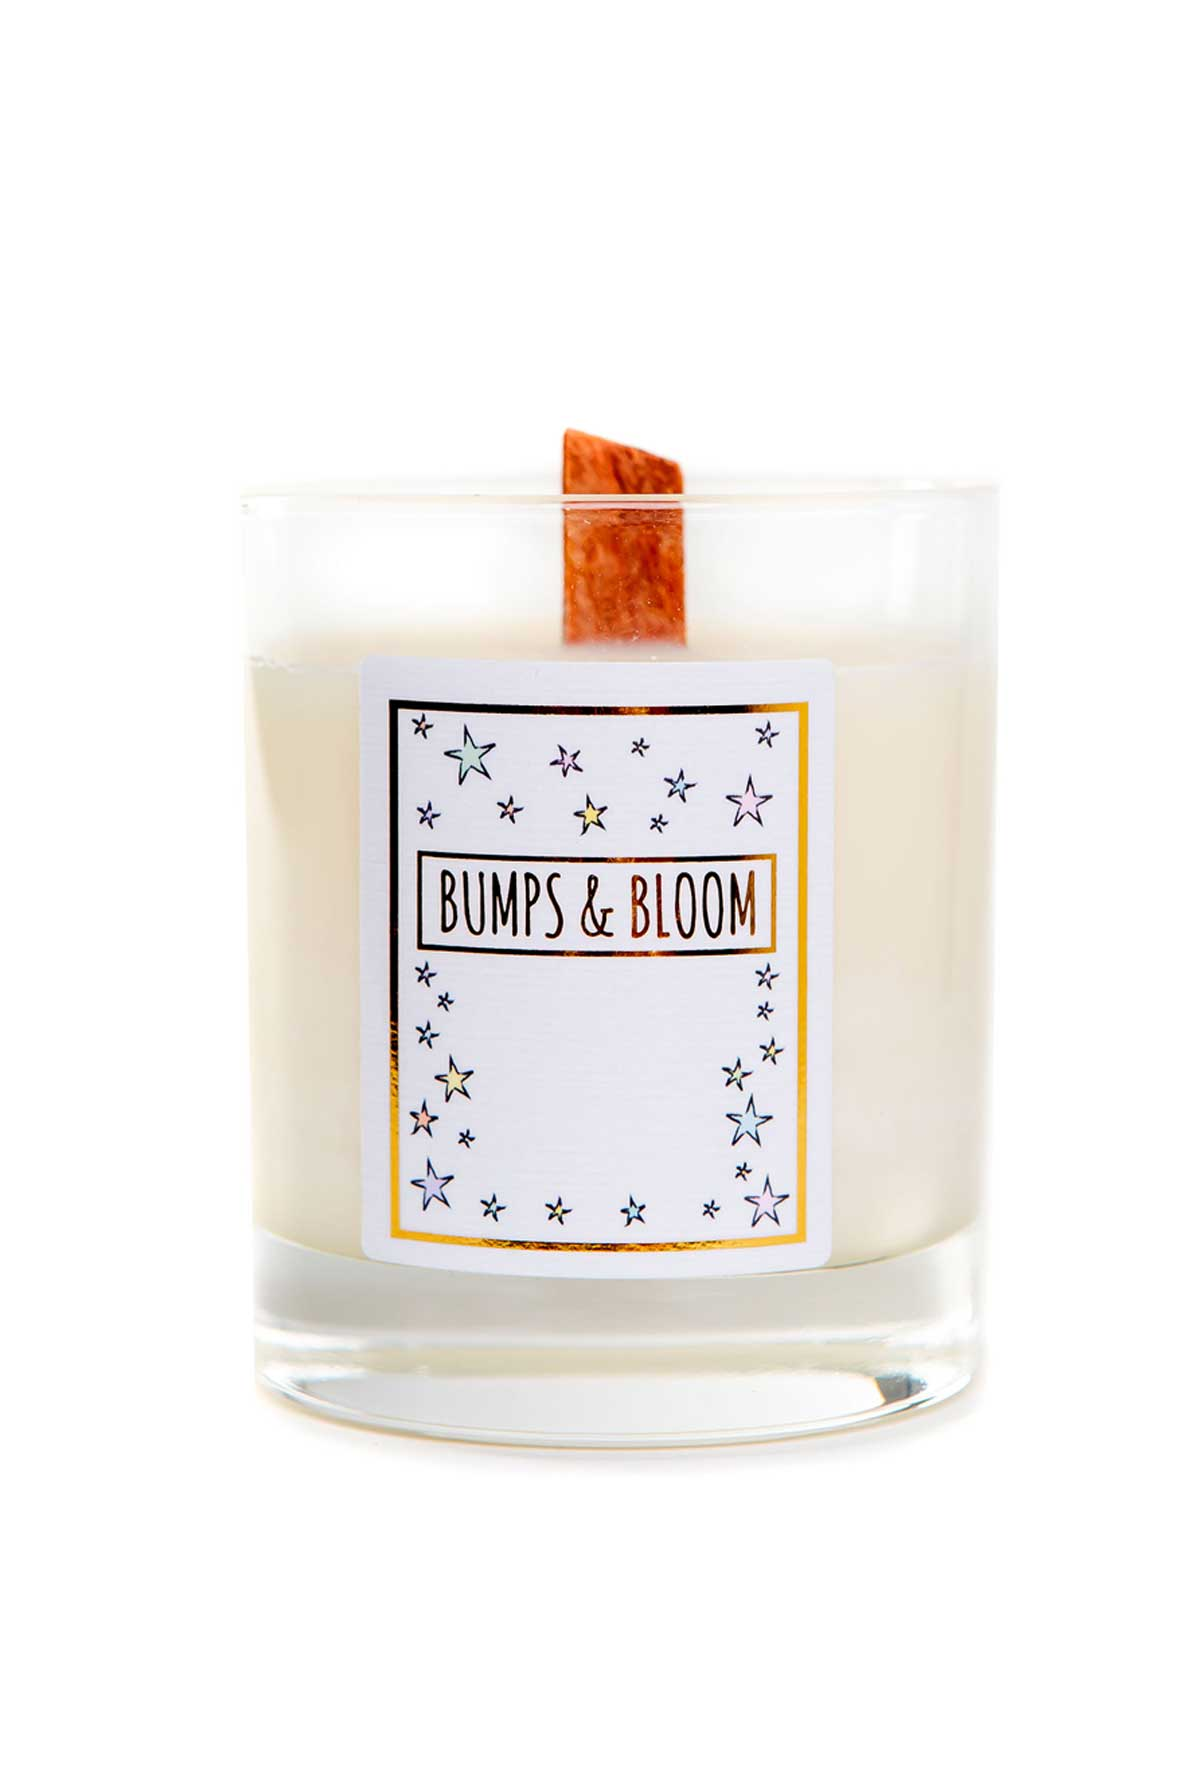 Bumps and Bloom Bedtime Candle - One Size